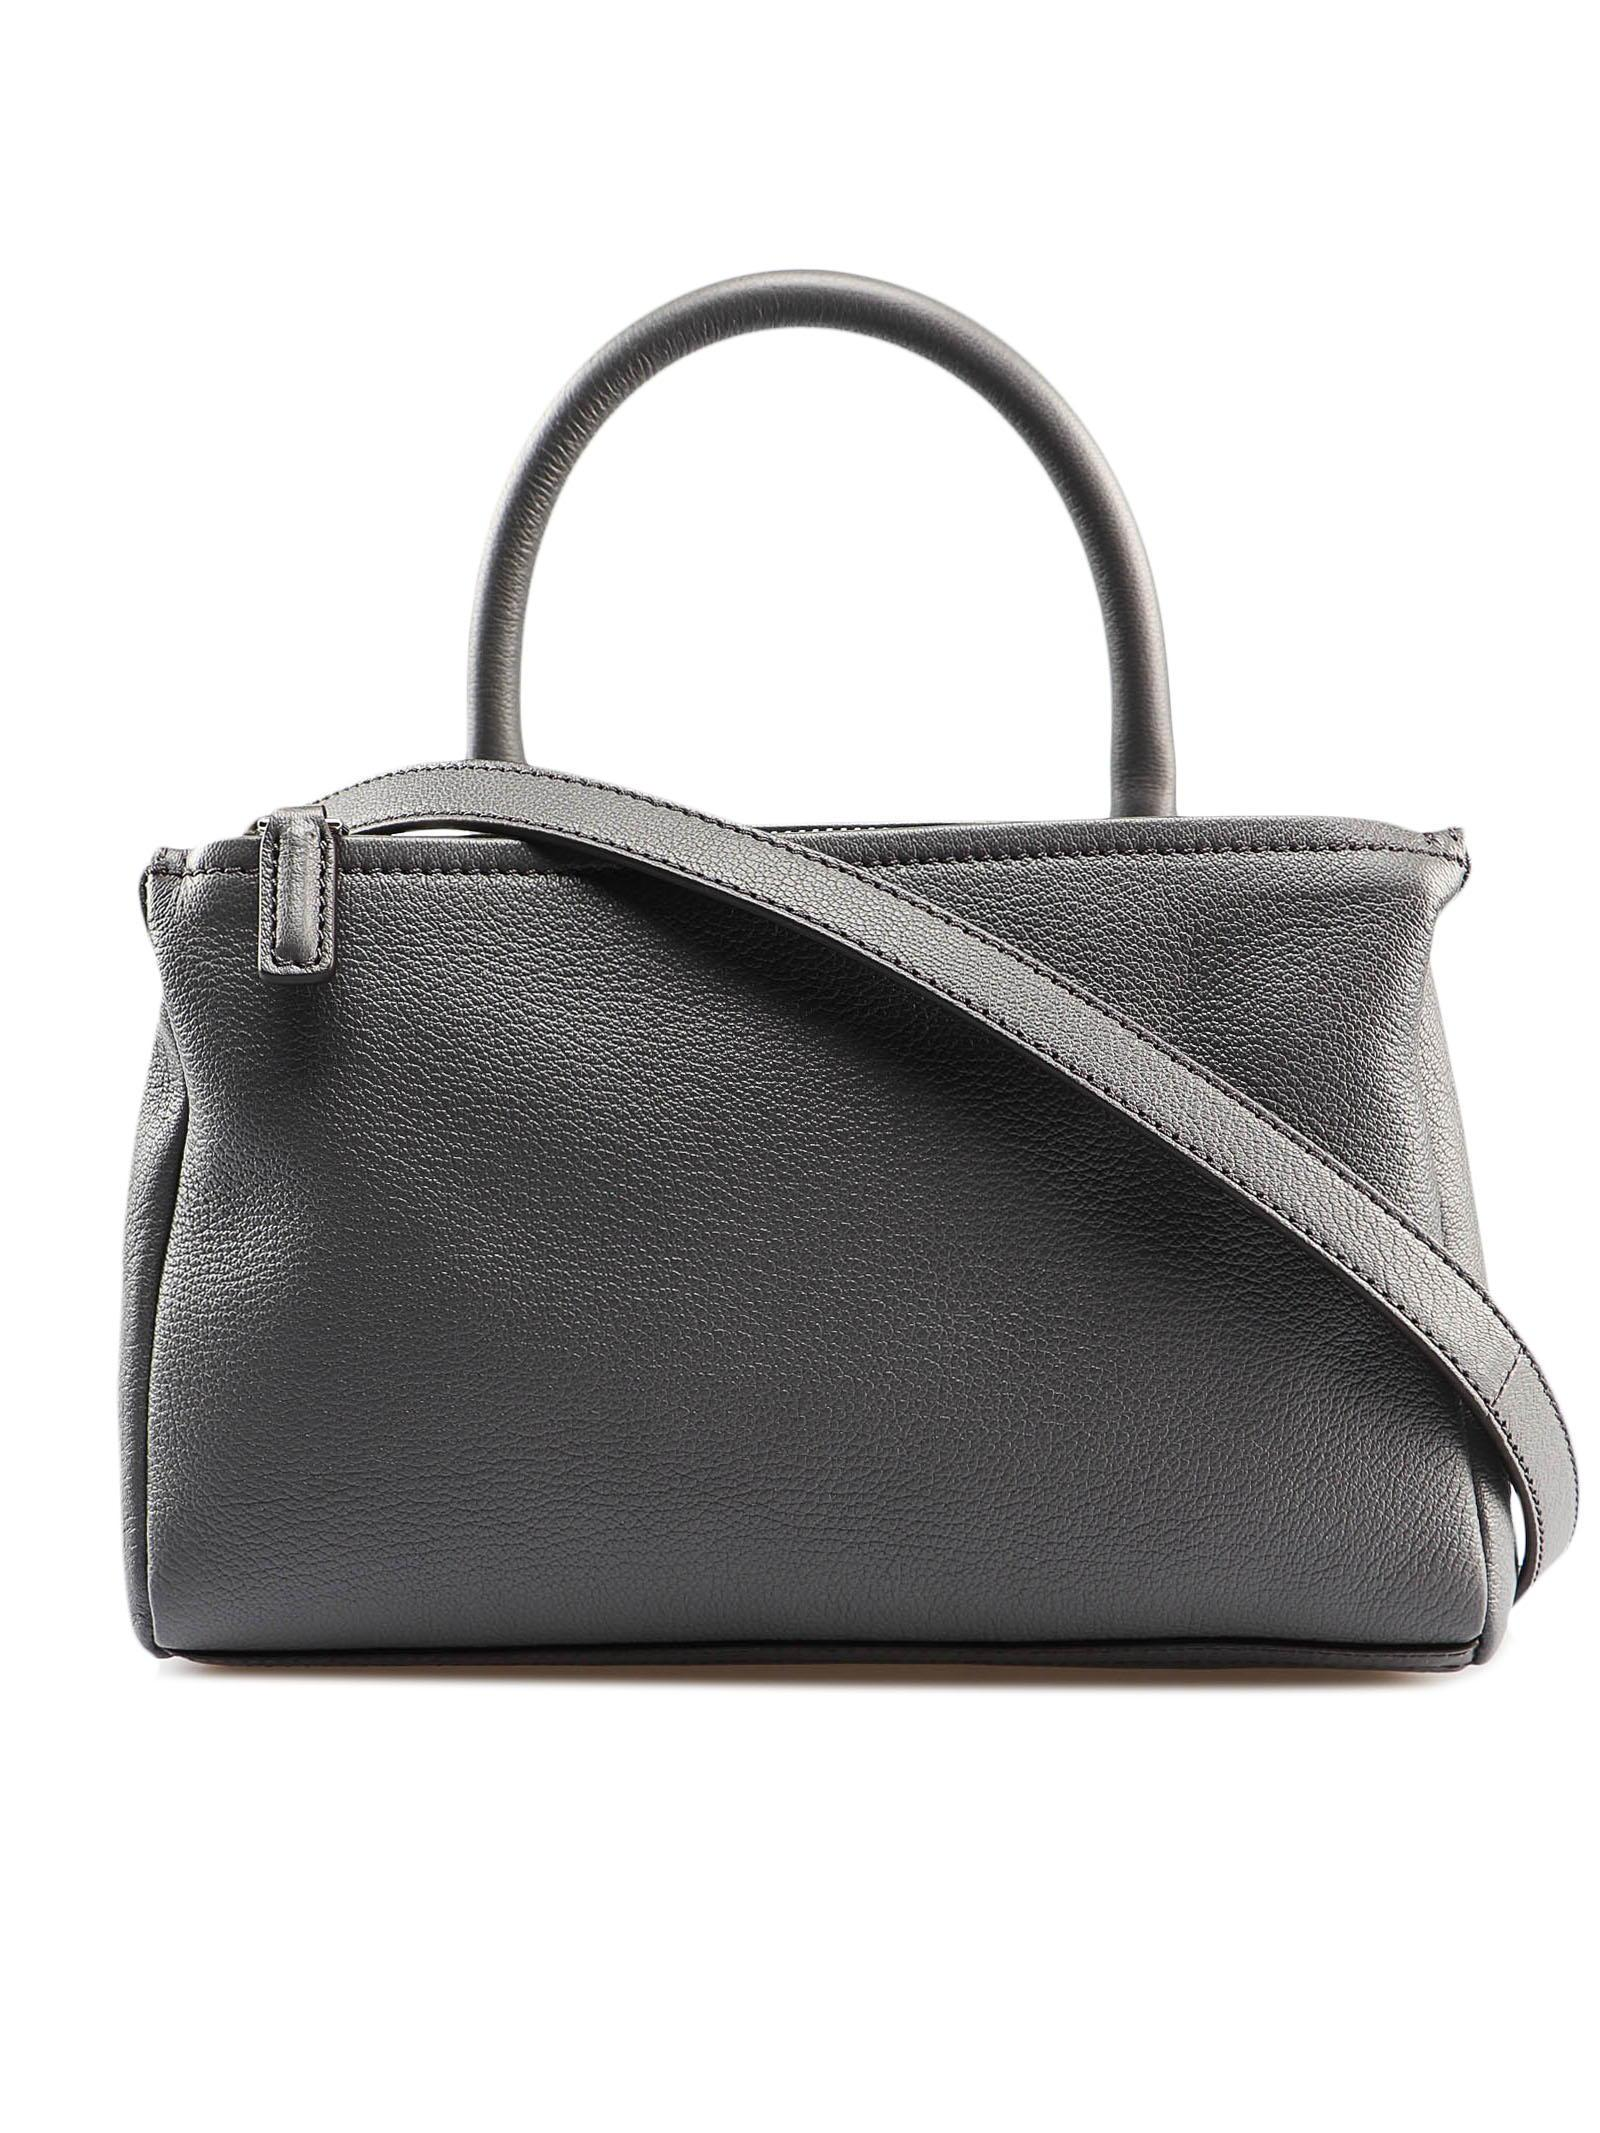 ede07fa605 Givenchy Pandora Mini Bag in Gray - Lyst